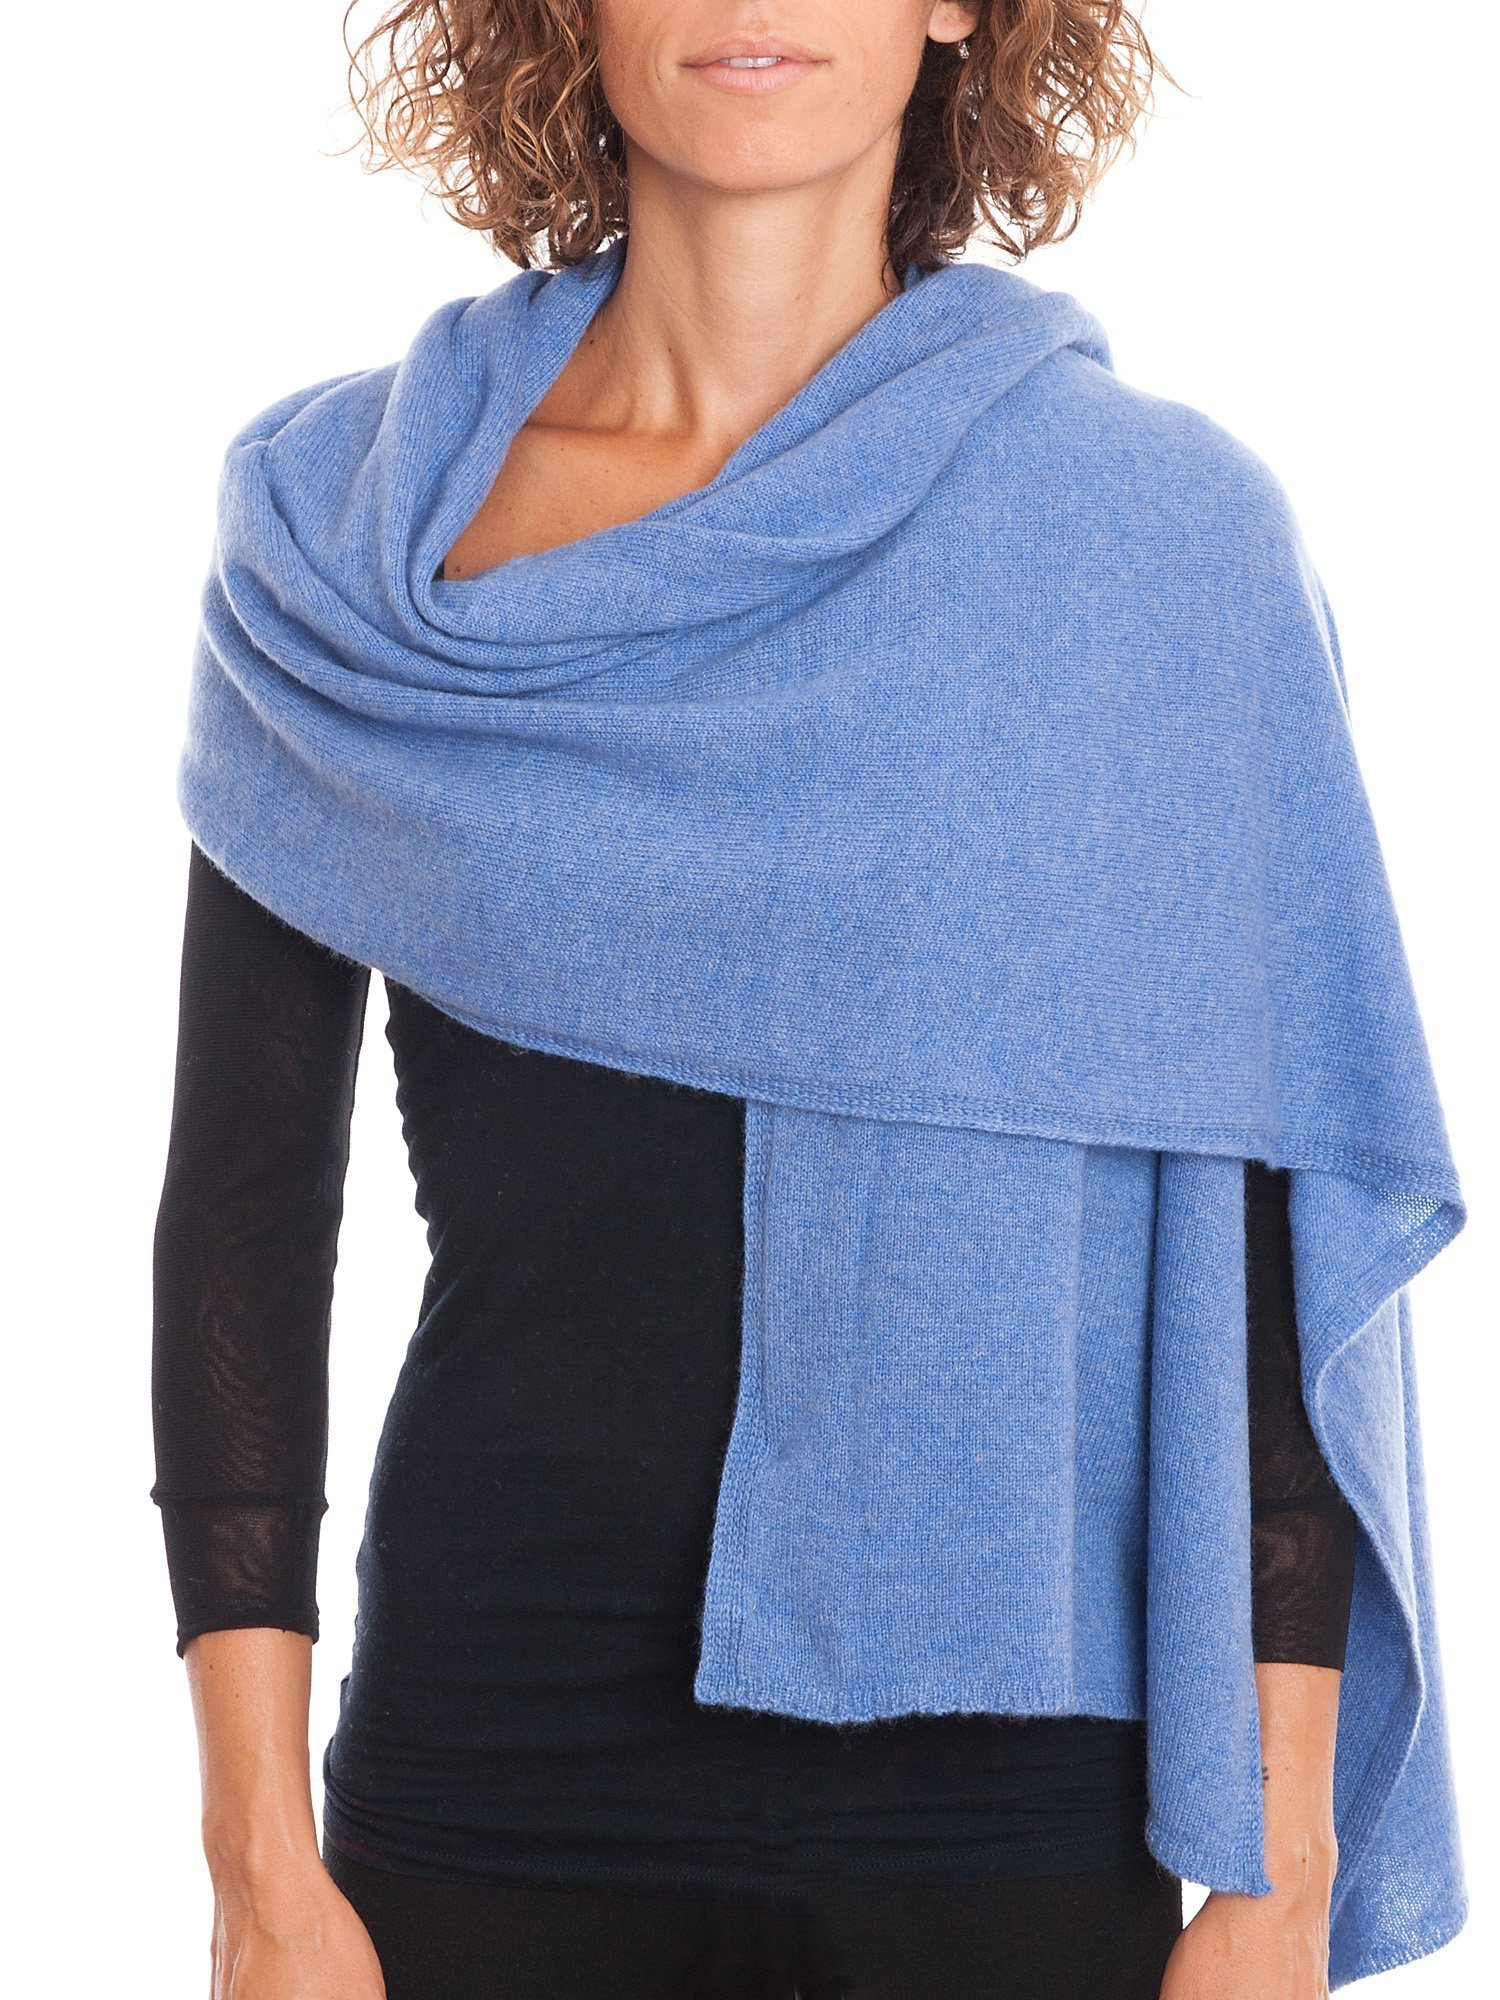 Dalle Piane Cashmere - Stole 100% cashmere - Made in Italy, Color: Light blue, One size